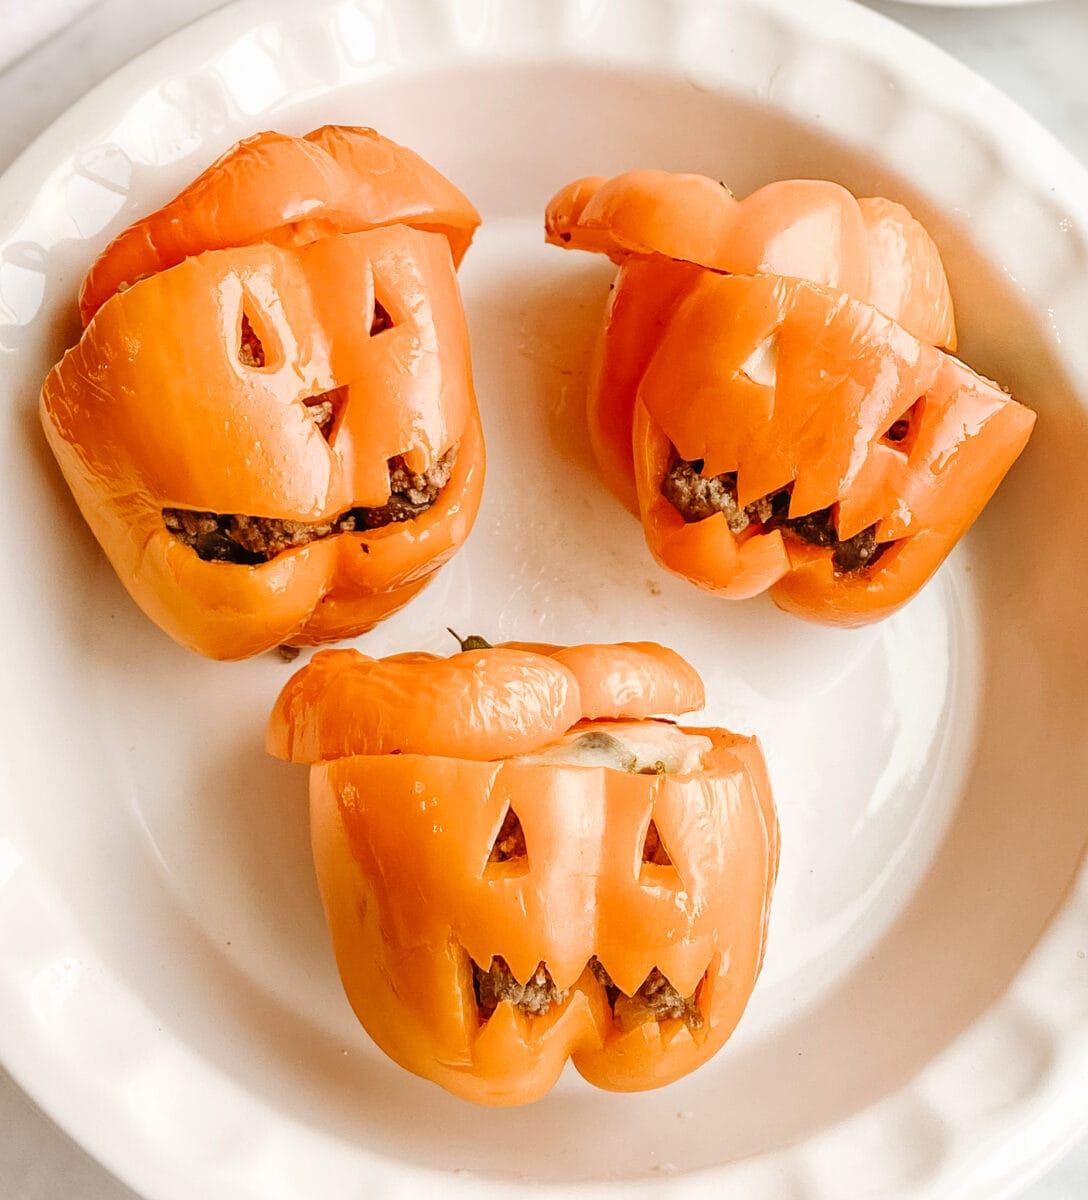 orange peppers with halloween faces on them looking up at the camera in a white ceramic bowl